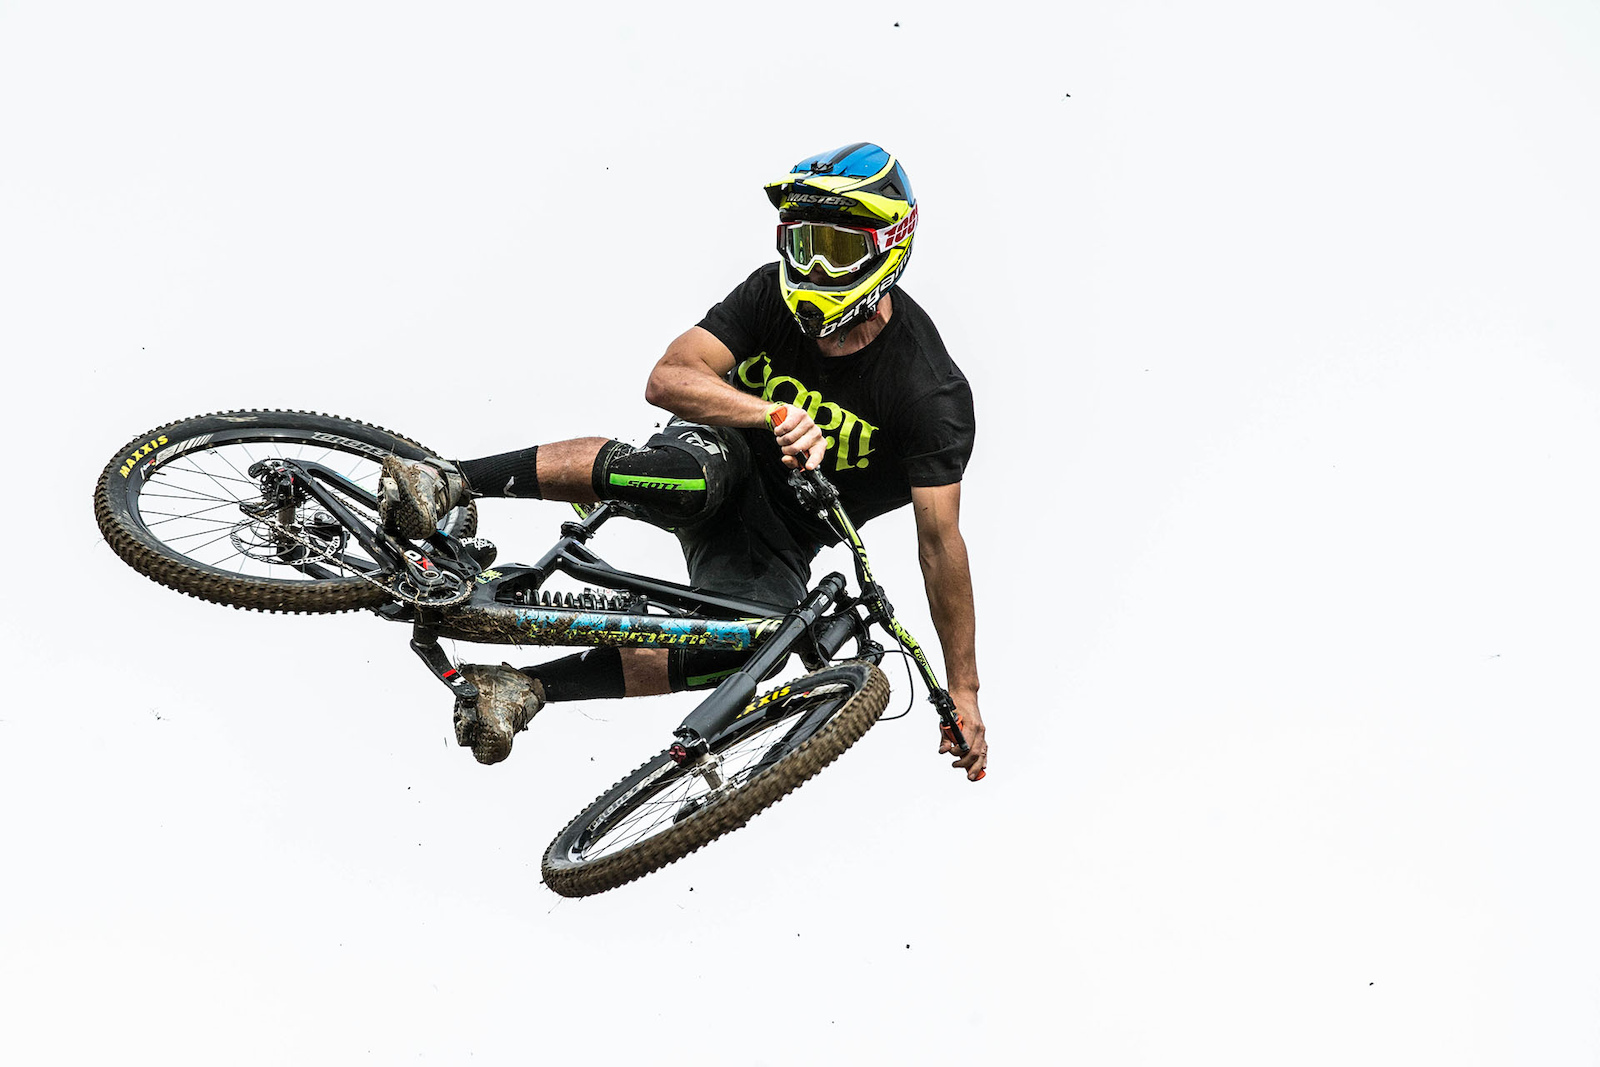 Crankworx 2016 Les Gets France.